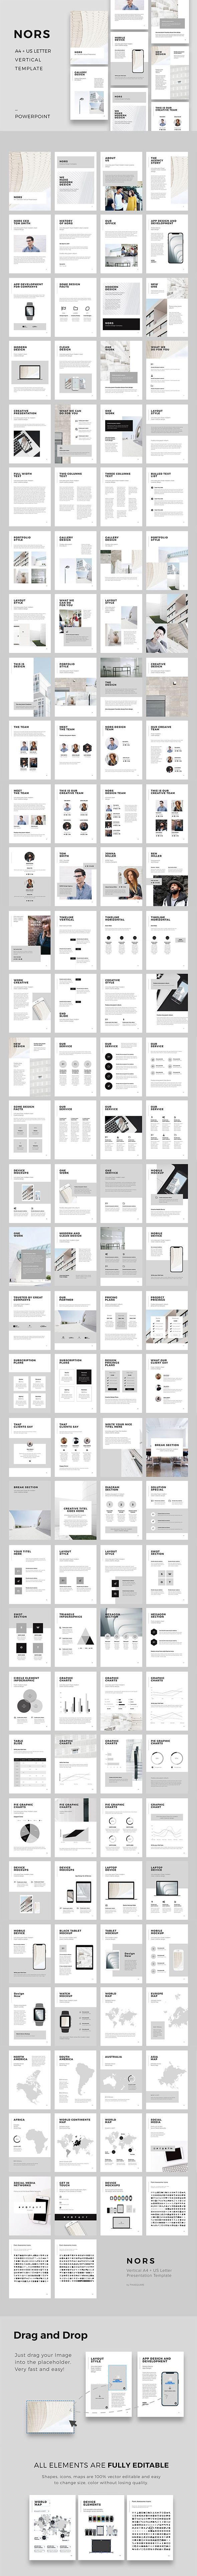 NORS Vertical Powerpoint A4 US Letter Template — Powerpoint PPT #design #595x842 • Available here ➝ https://graphicriver.net/item/nors-vertical-powerpoint-a4-us-letter-template/20701747?ref=pxcr